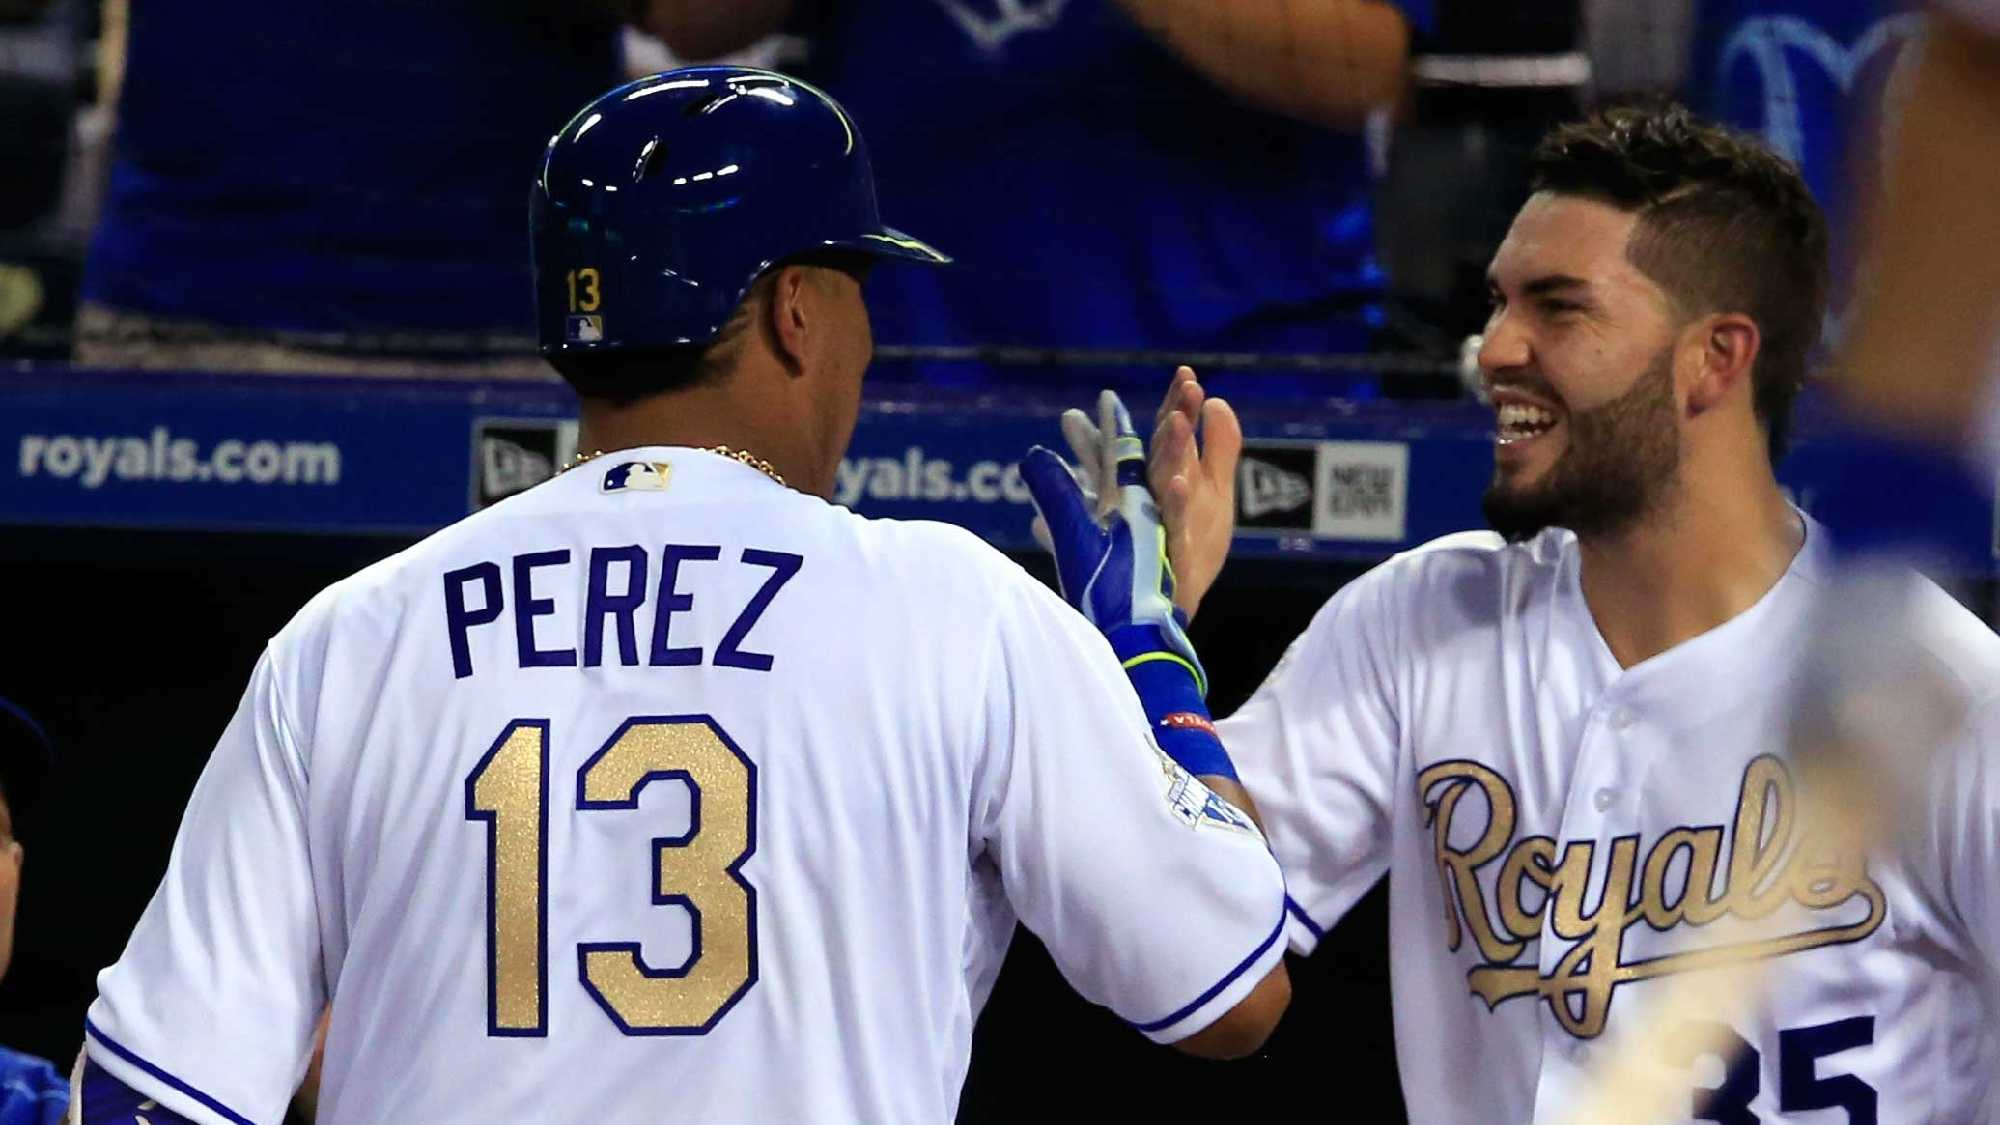 Kansas City Royals' Salvador Perez (13) is congratulated by Eric Hosmer (35) after his solo home run during the sixth inning of a baseball game against the Detroit Tigers at Kauffman Stadium in Kansas City, Mo., Friday, June 17, 2016. (AP Photo/Orlin Wagner)